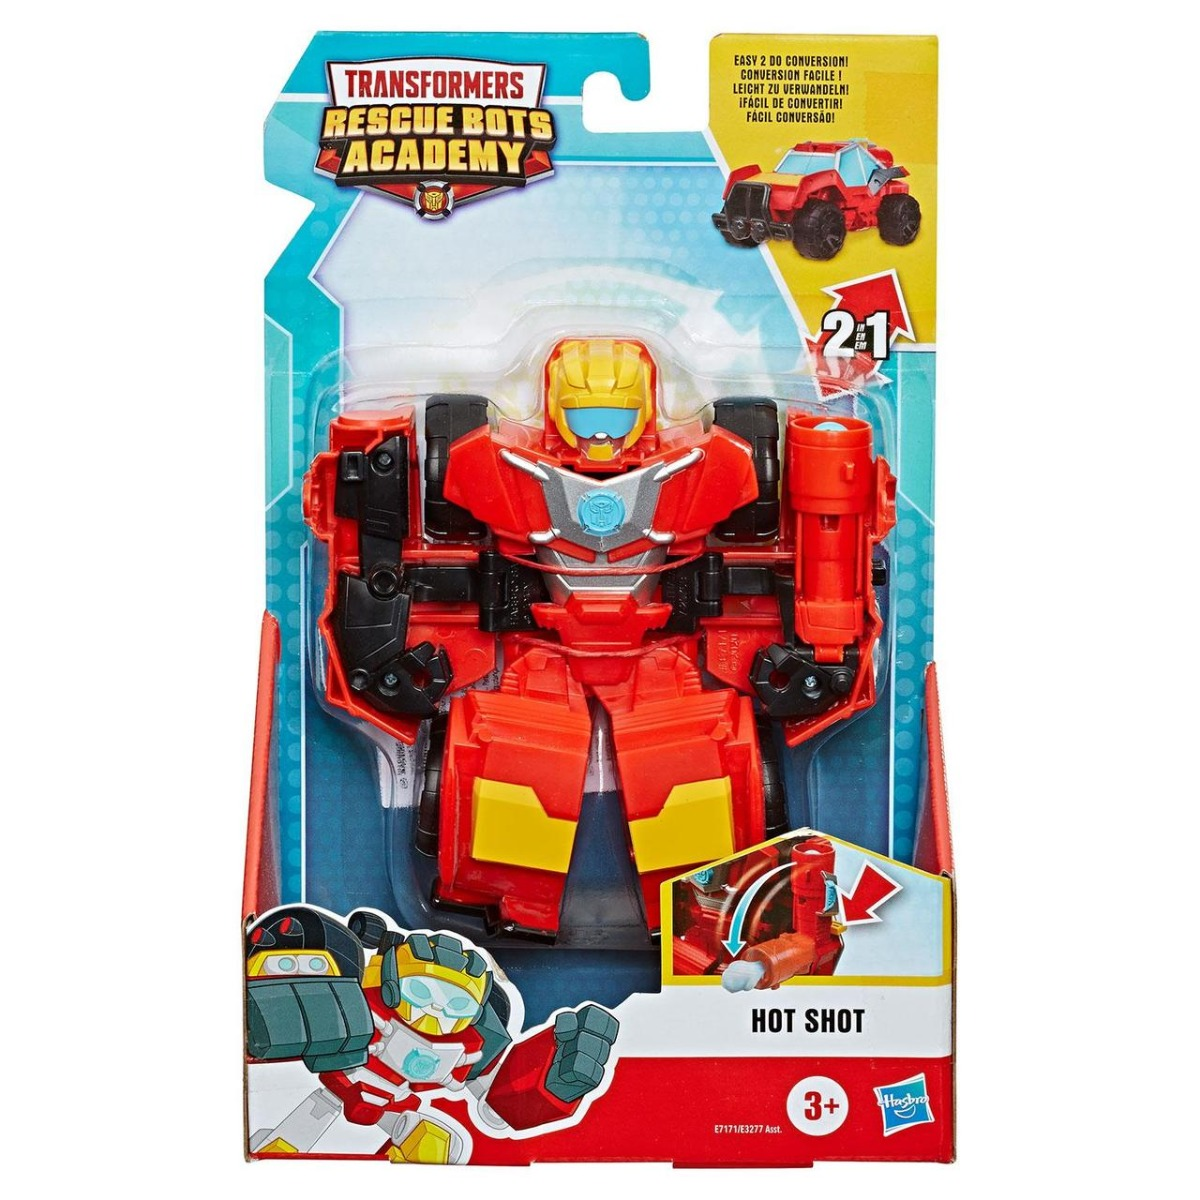 Figurina Transformers Rescue Bots Academy, Hot Shot, E7171